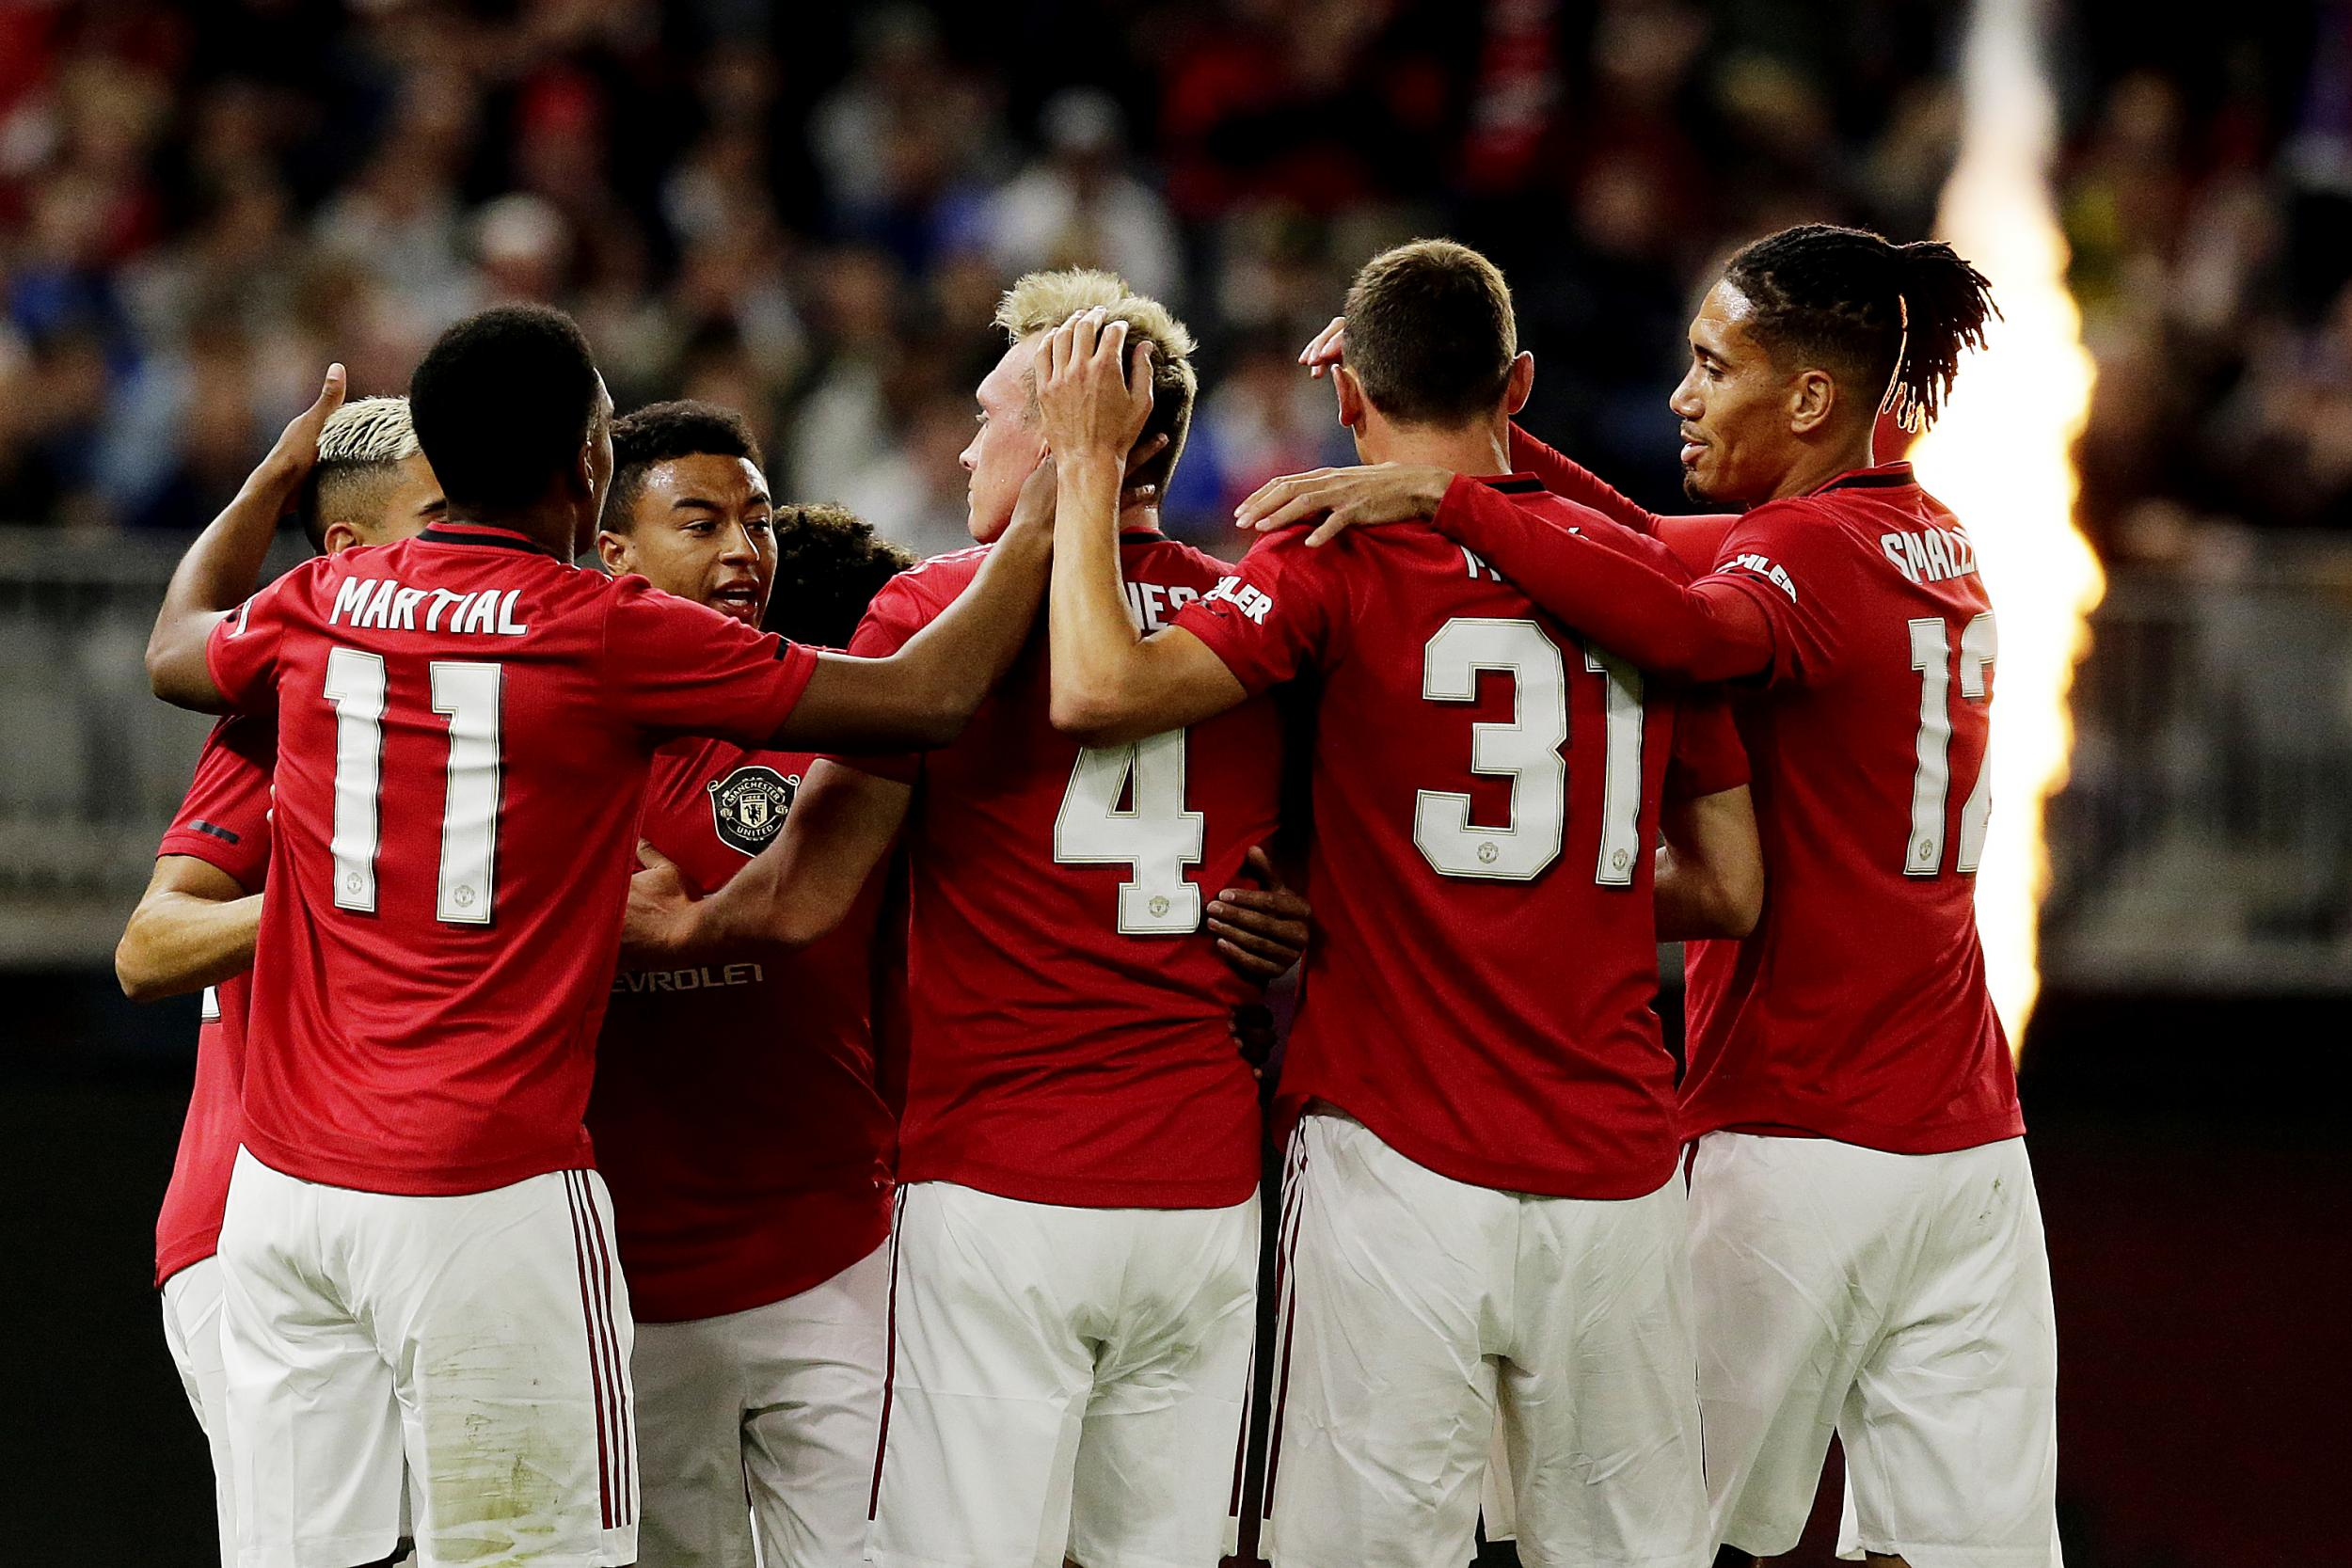 Manchester United vs Leeds player ratings: Aaron Wan-Bissaka and Marcus Rashford impress in win